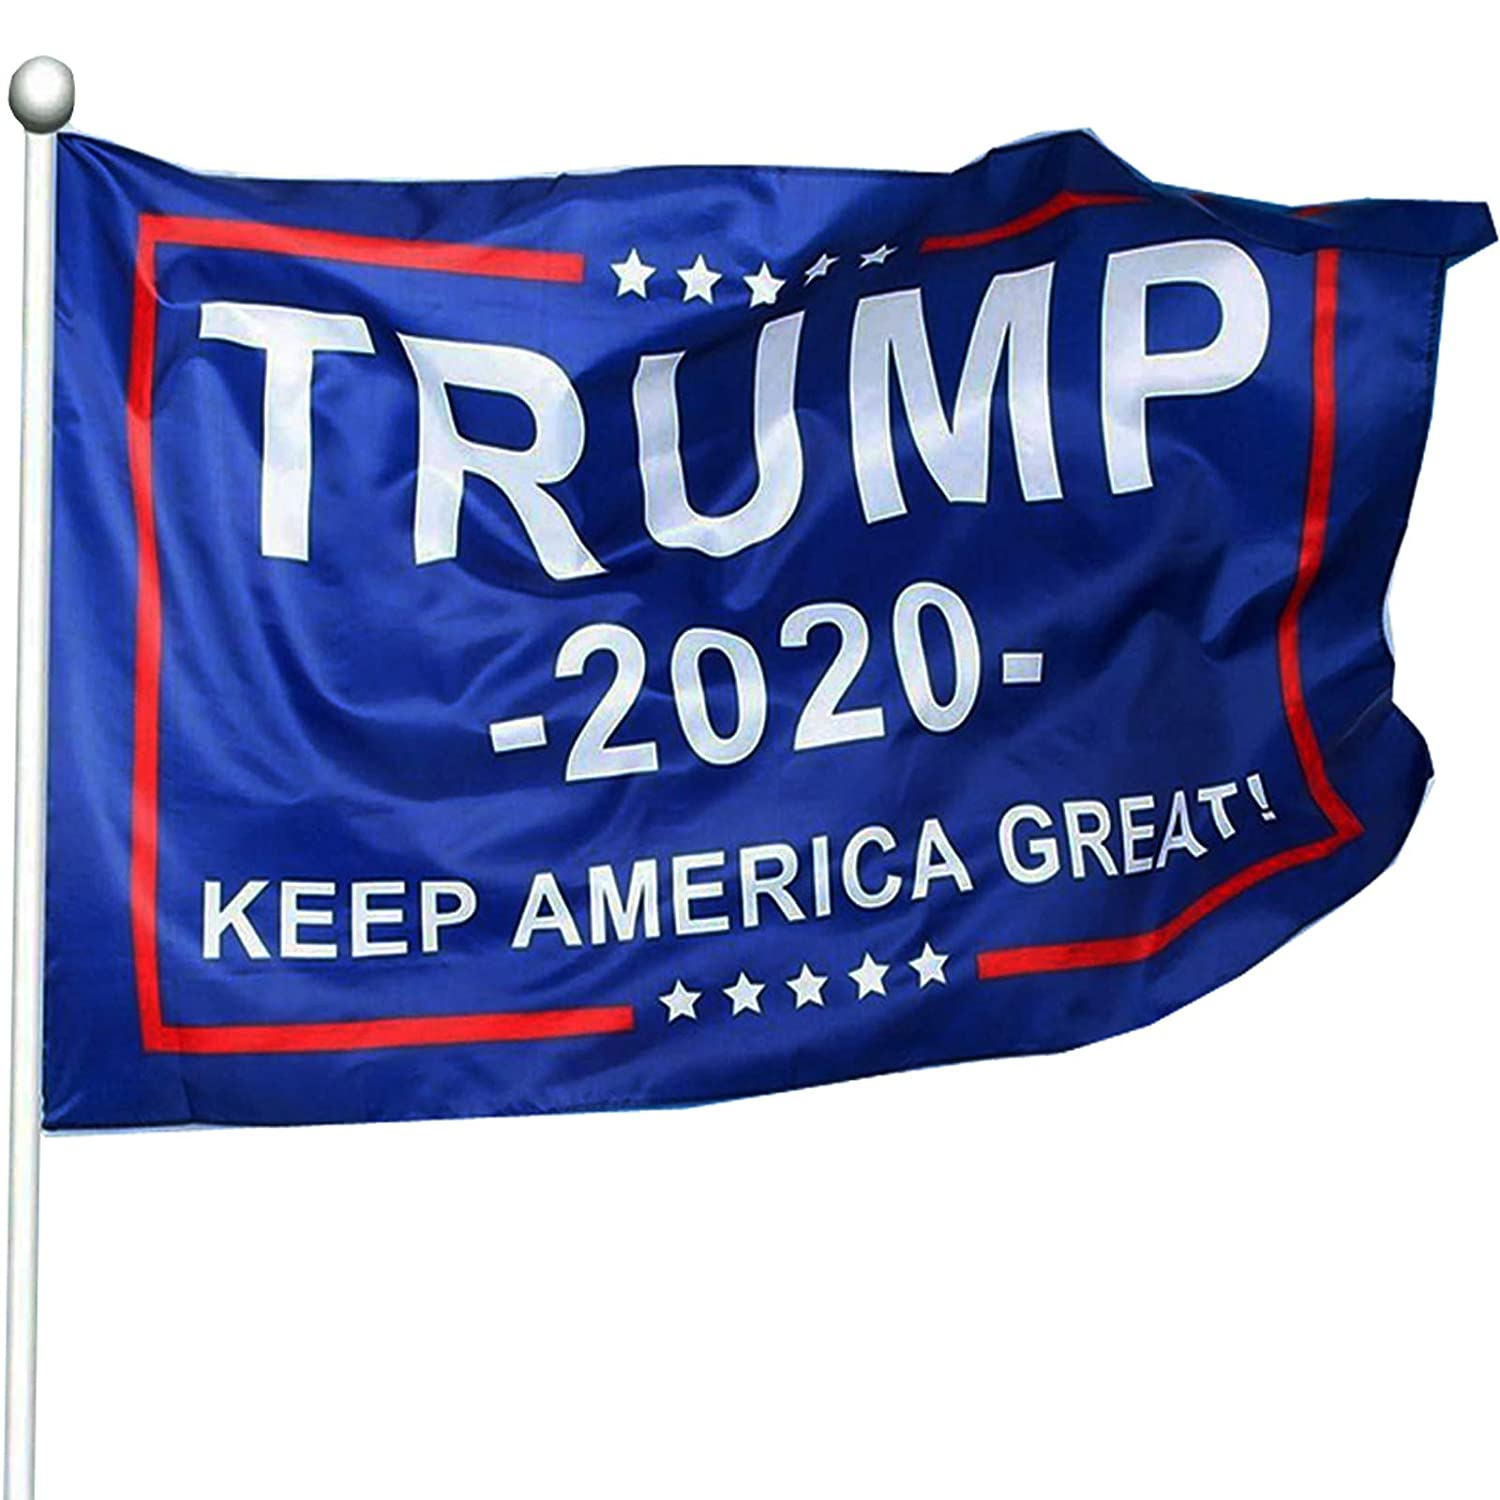 WIBIMEN Keep America Great Flag - President Donald Trump 2020 Flag - Vivid Color and UV Fade Resistant 3x5 Feet with Grommets Double Stitched